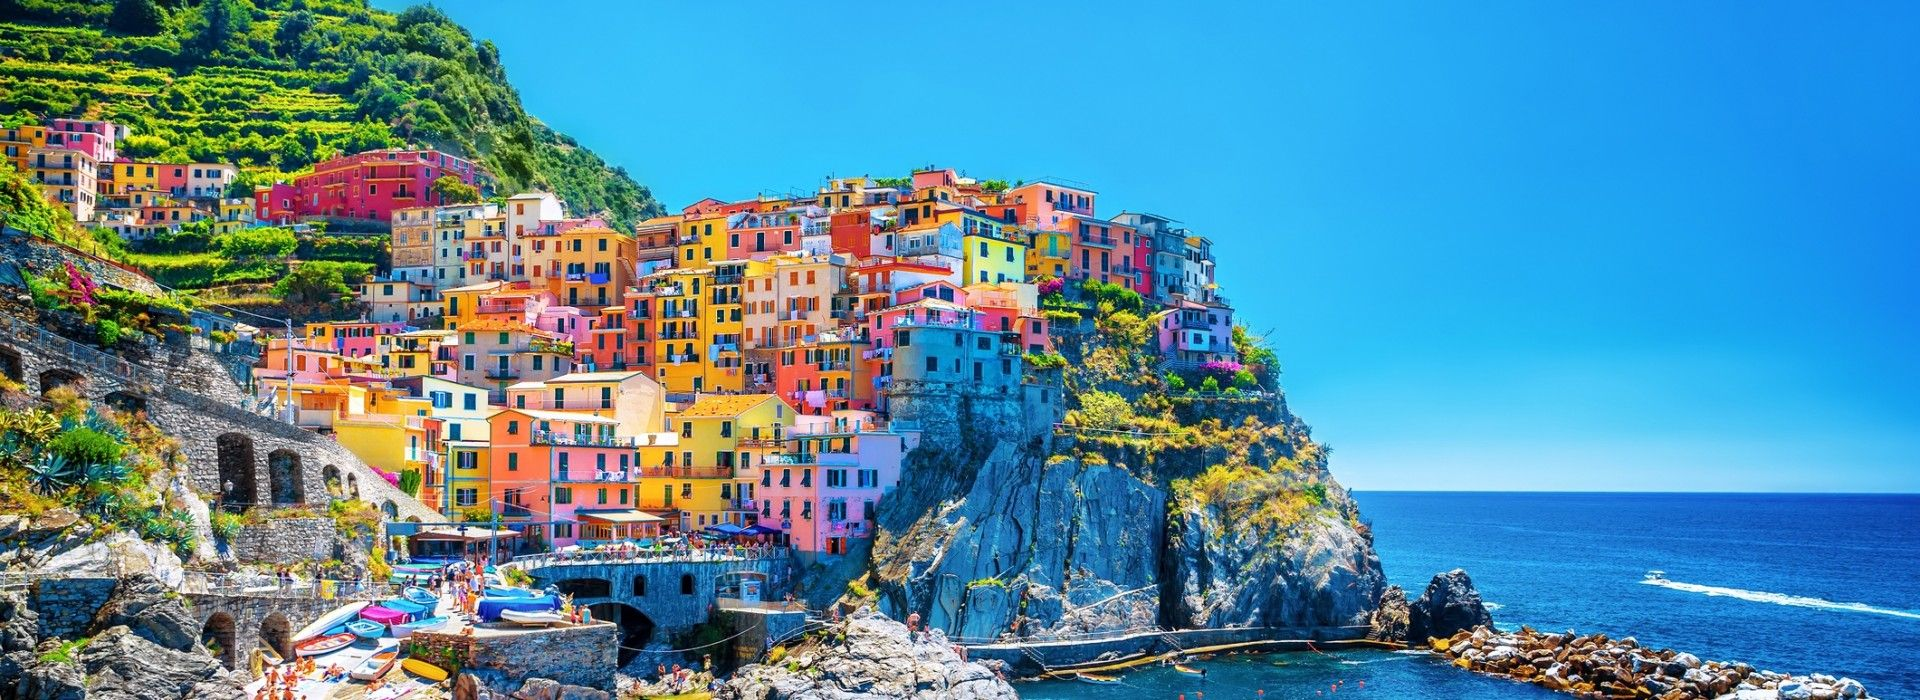 It is a must to take a Cinque Terre trip when in Italy.